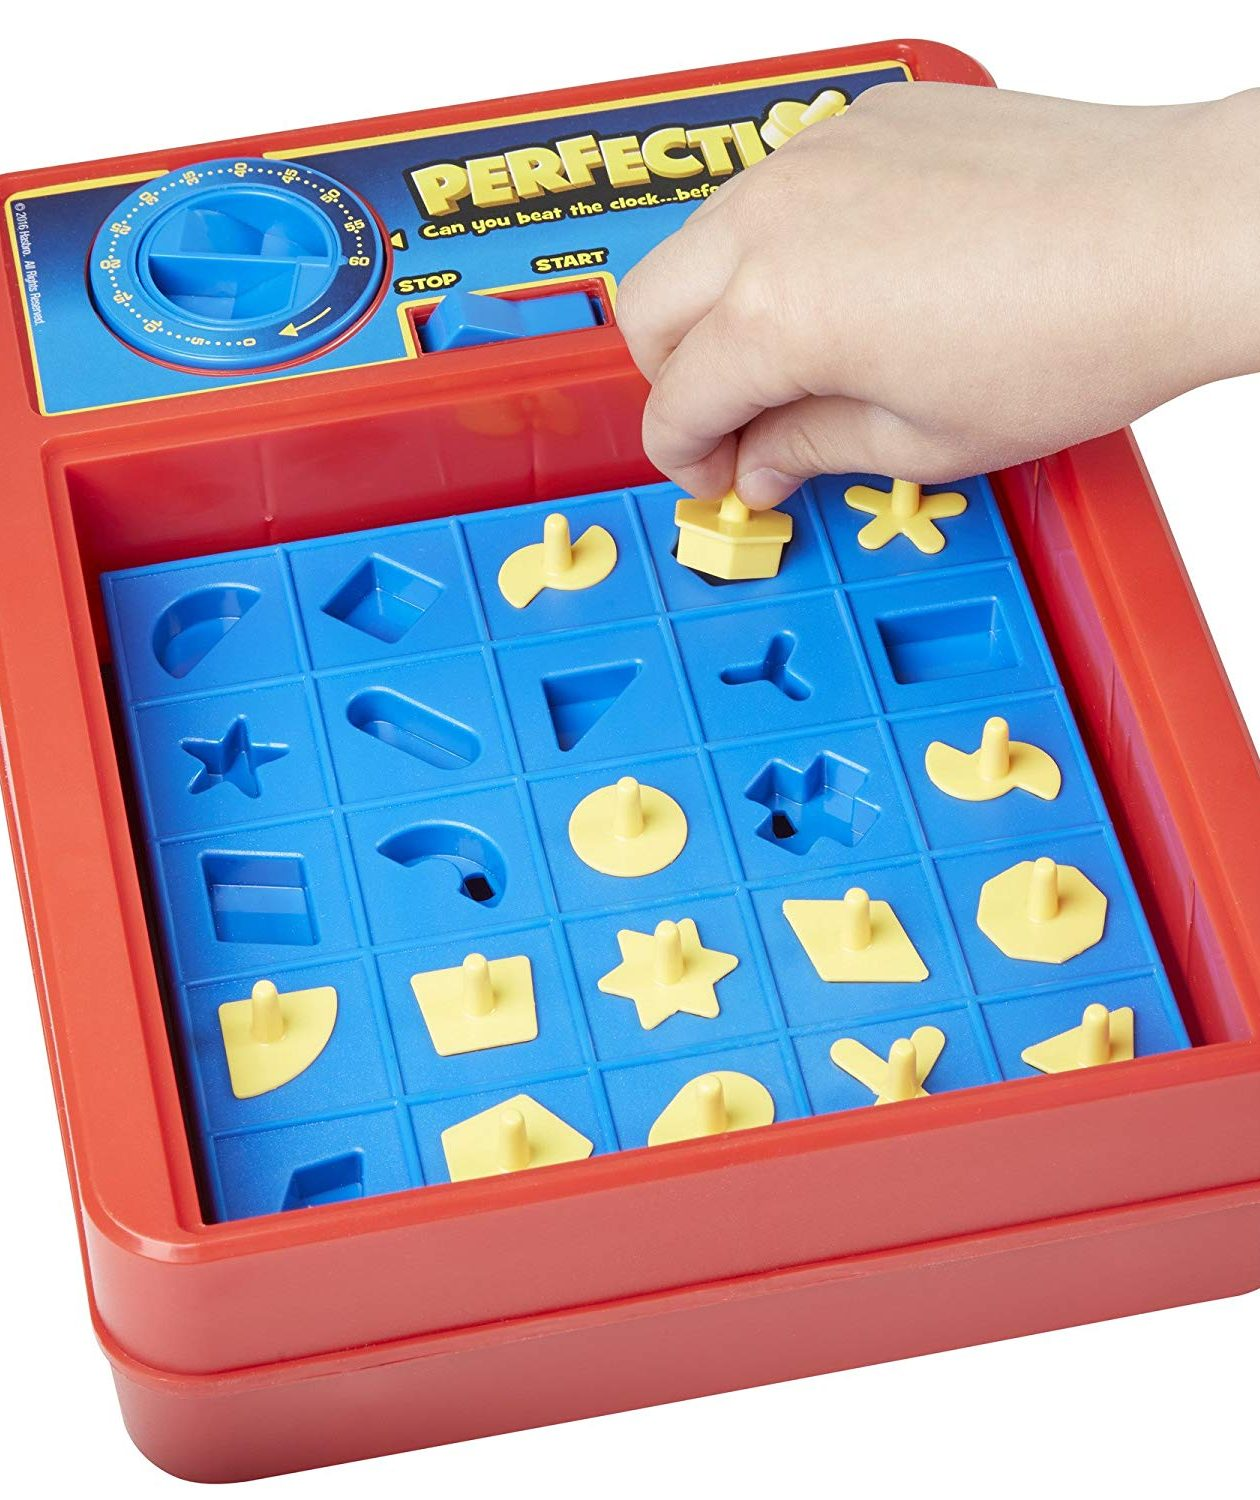 toys 36 e1560330538388 20 Toys From The Nineties That Made You The Coolest Kid Around